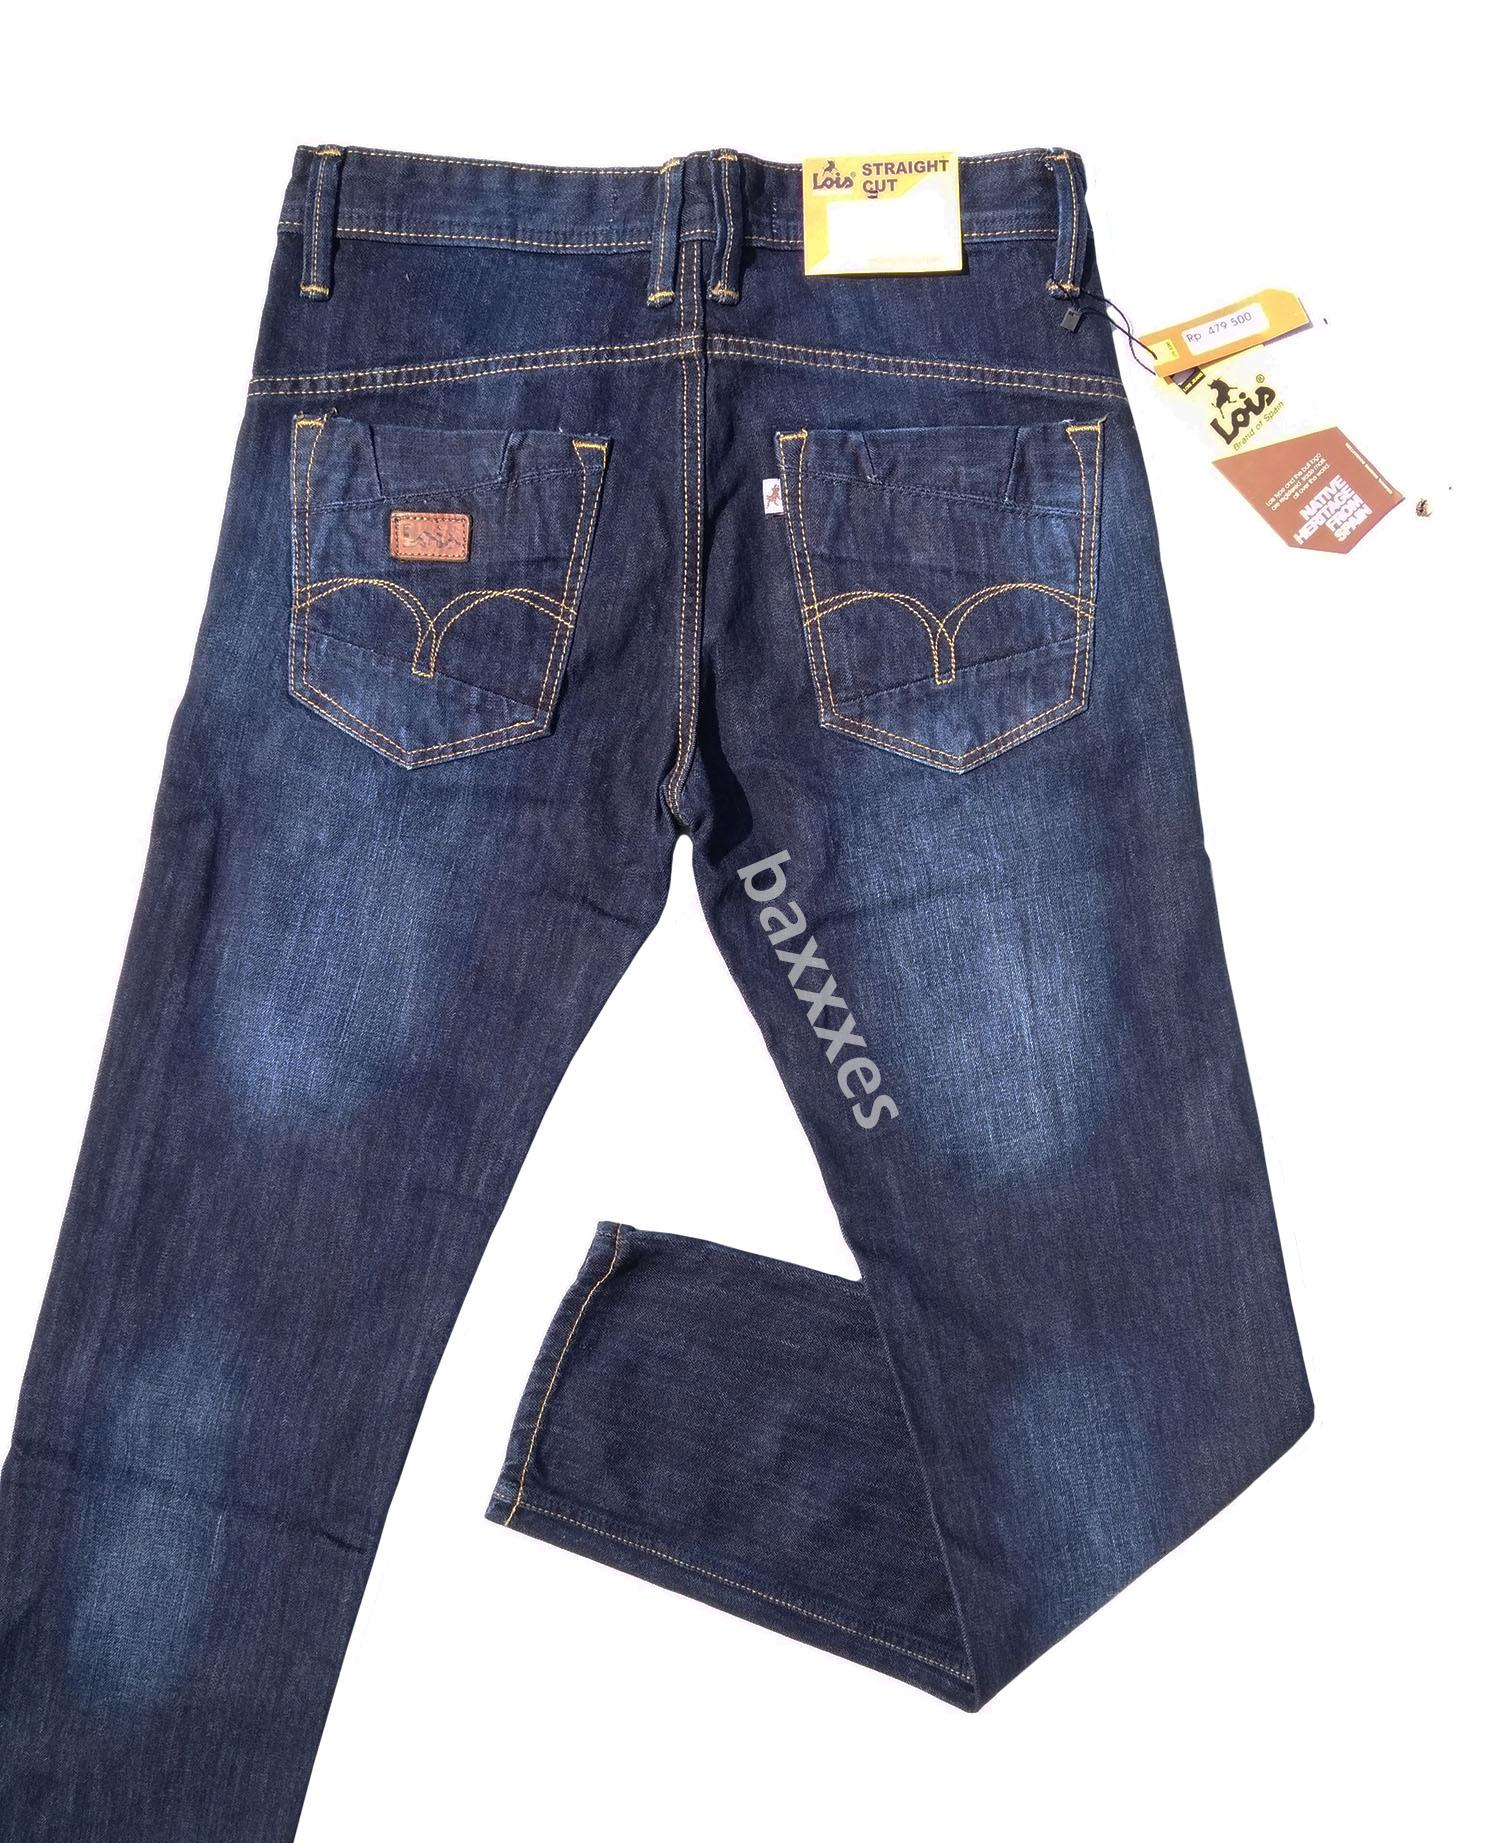 ... Lois Jeans Original - Medium Blue - 3 ...